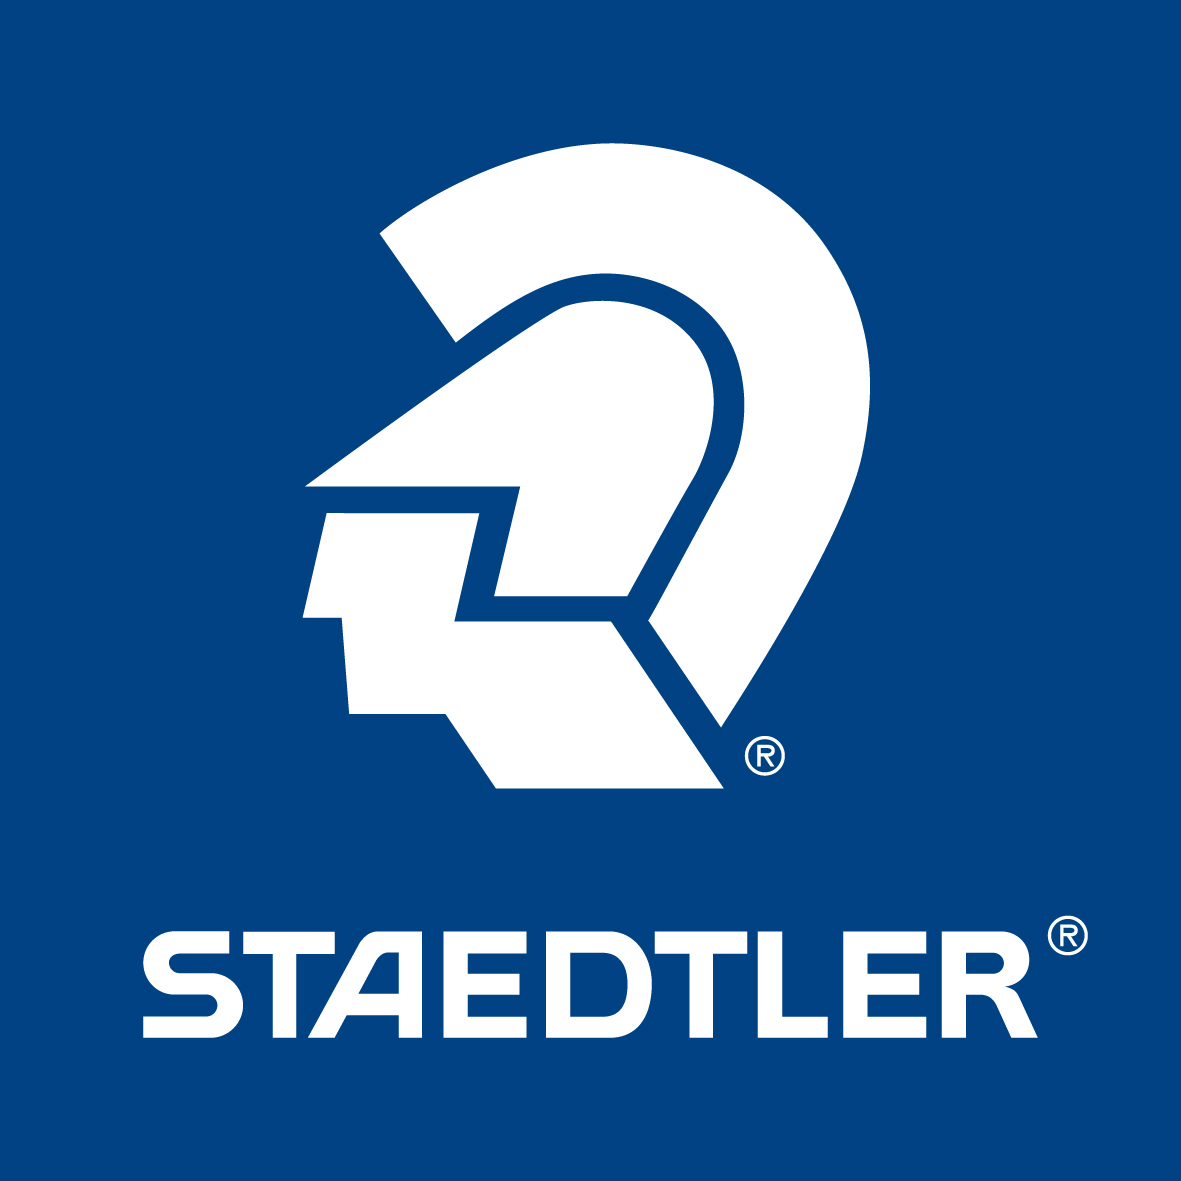 Staedtler, Germany